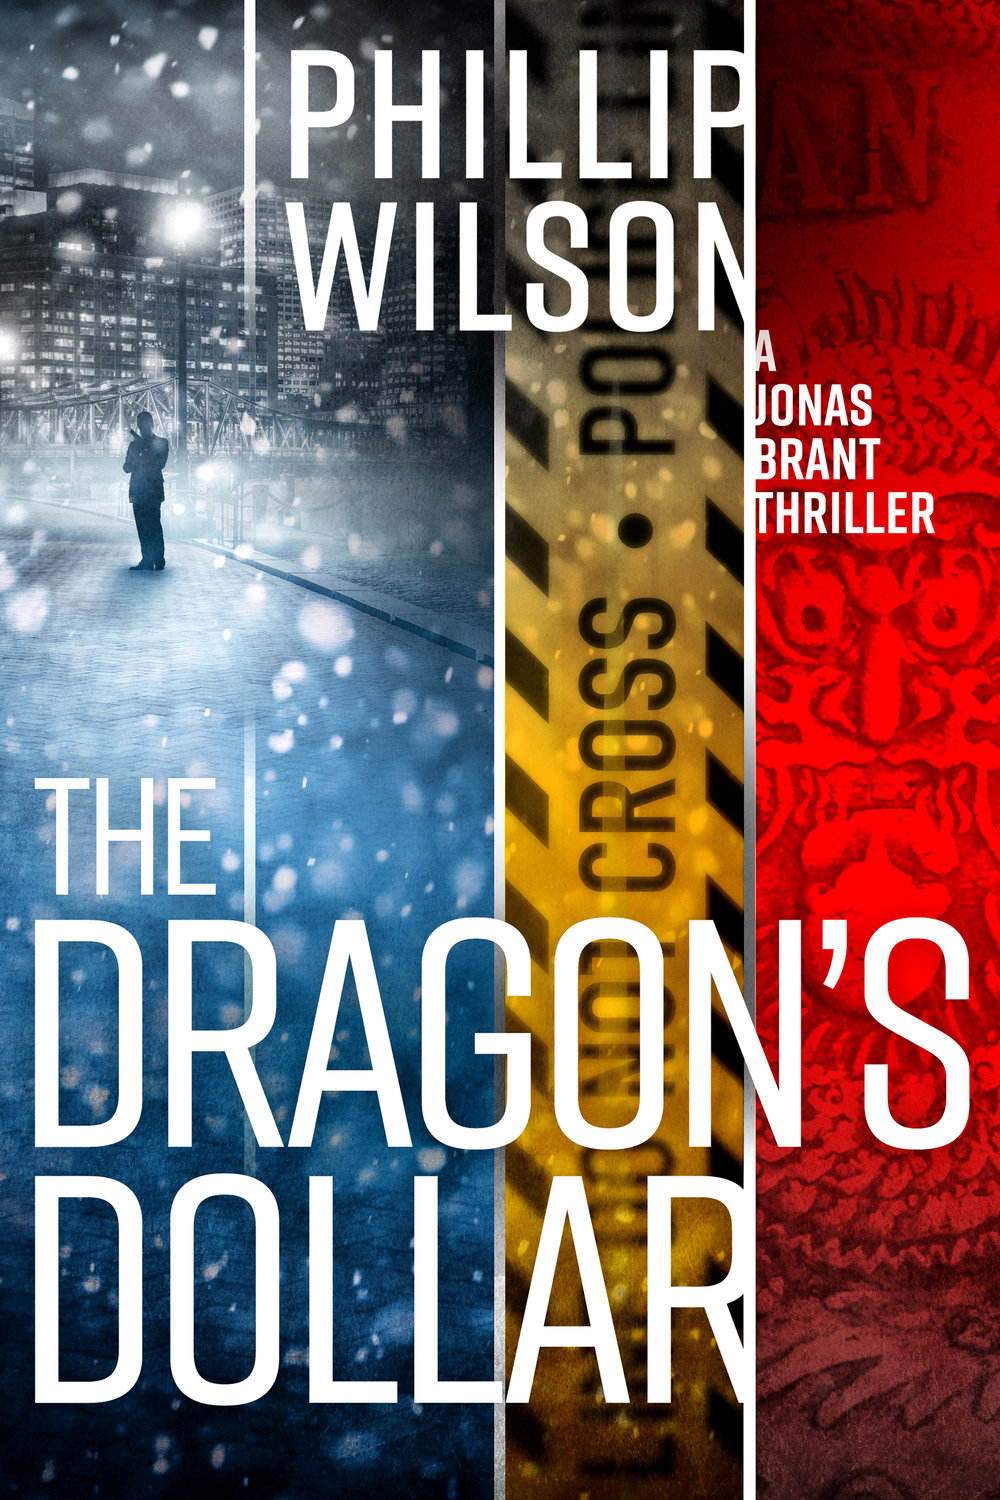 1803 Phillip Wilson ebook THE DRAGON'S DOLLAR_L-1.jpg